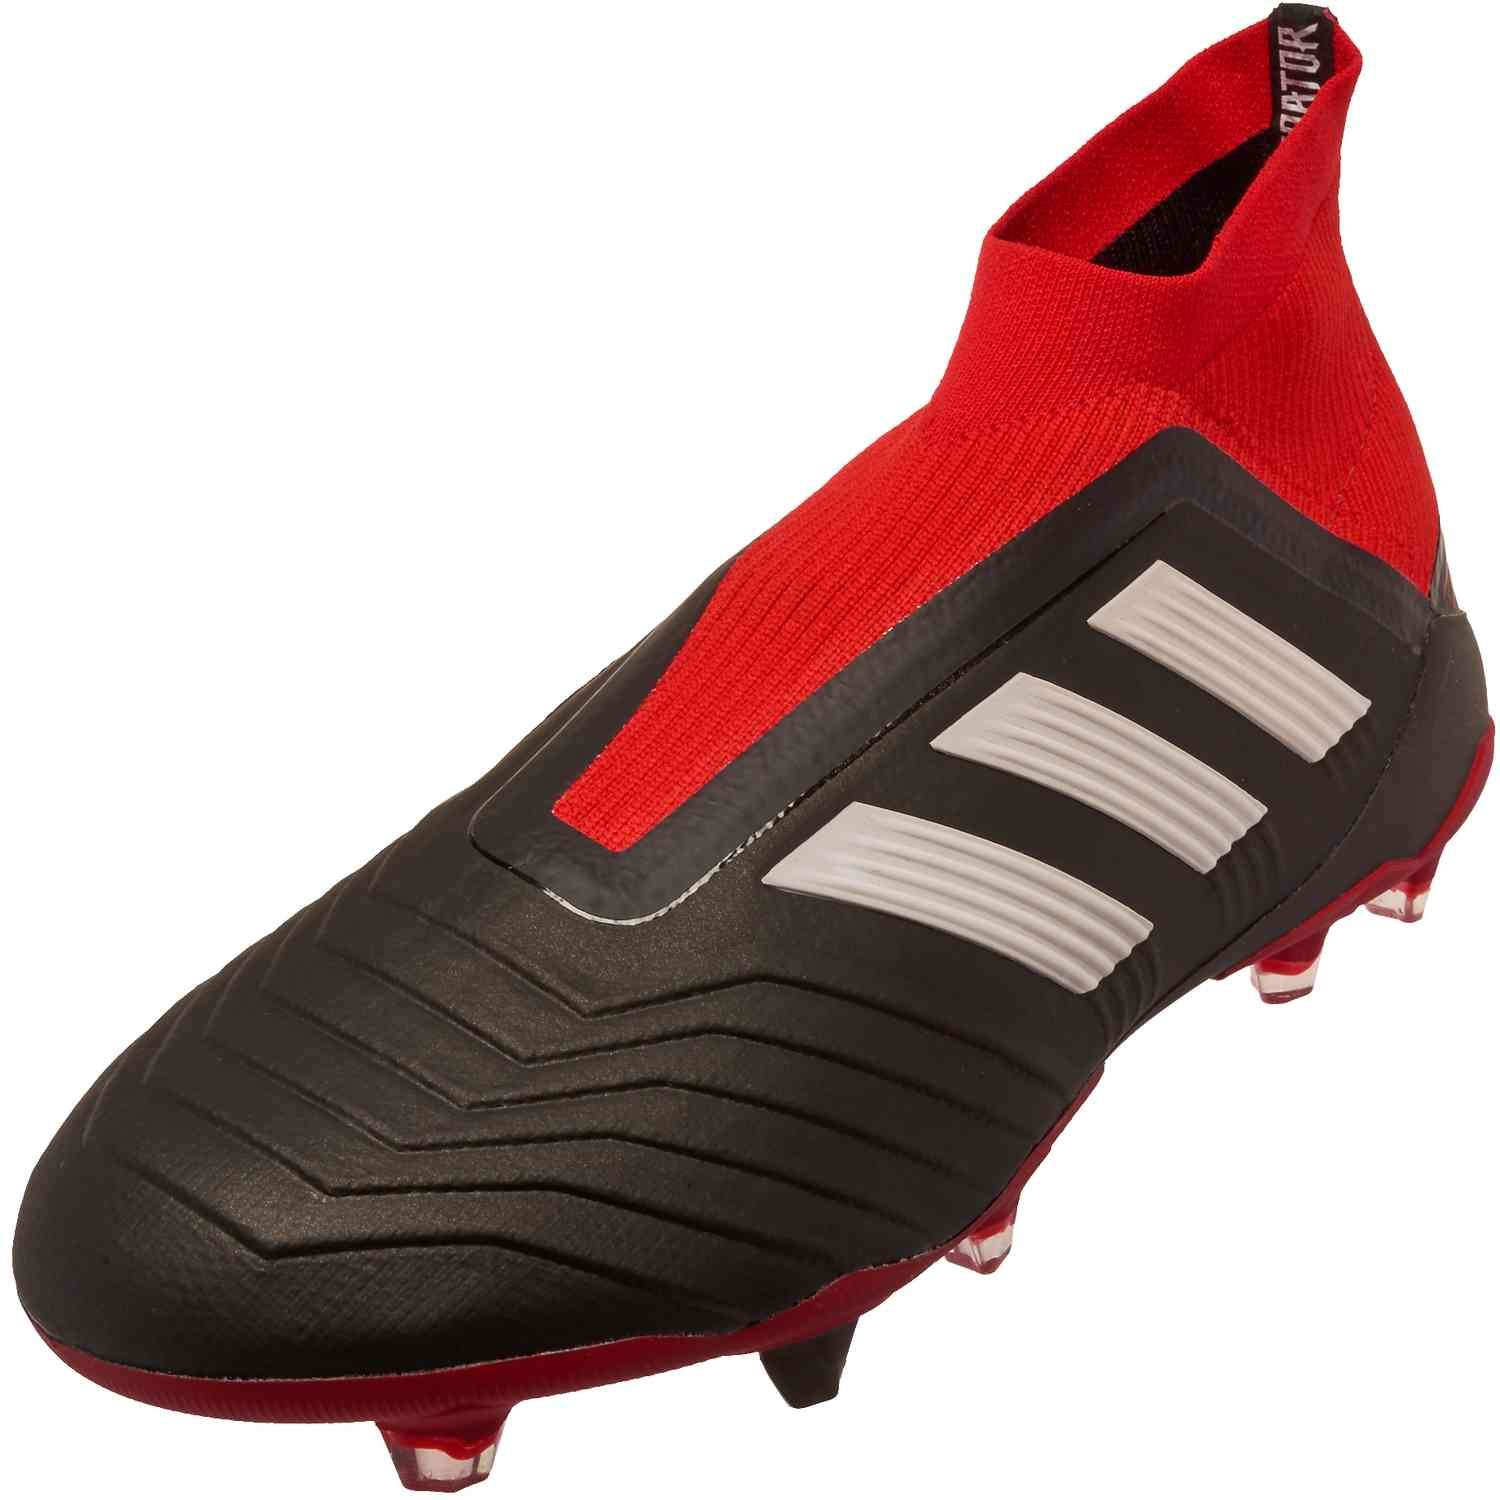 watch c0148 4d156 Team Mode pack adidas Predator 18+ Shop for yours from SoccerPro